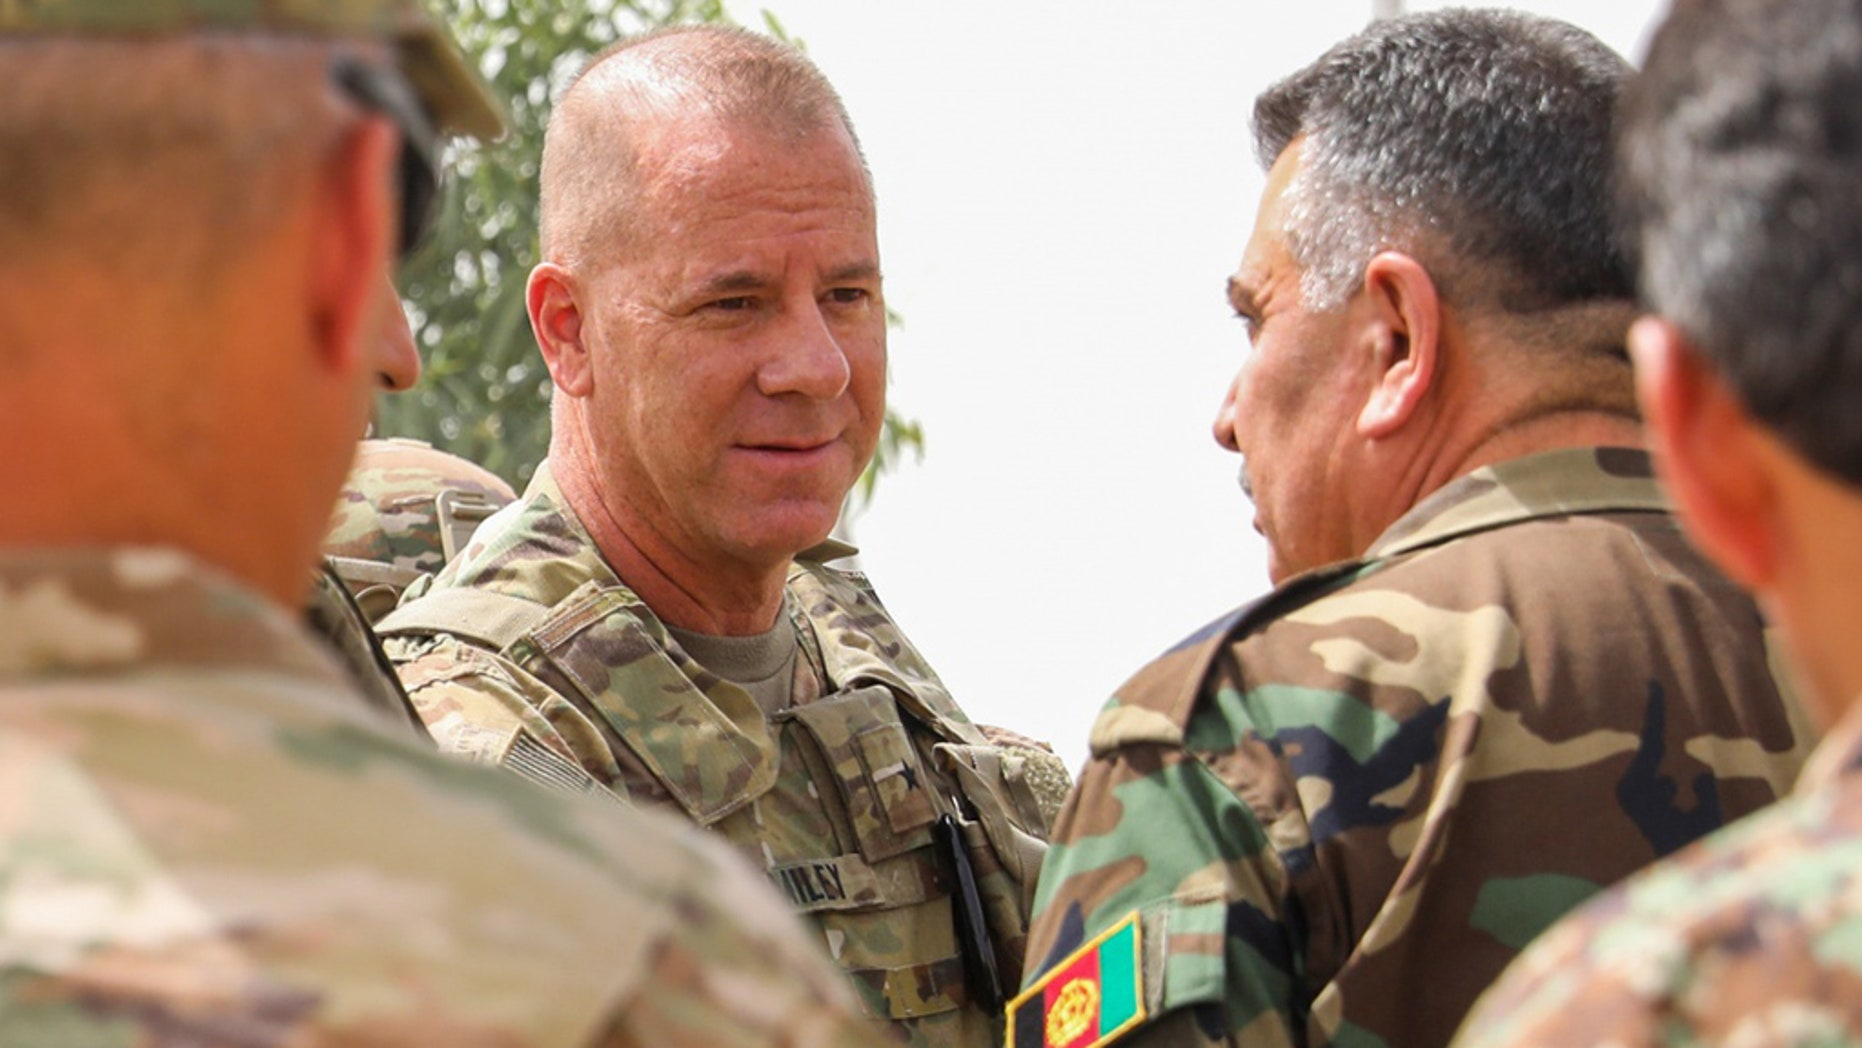 The Pentagon has confirmed that U.S. Army Brig. Gen. Jeffrey Smiley, center, was shot in a Taliban attack that killed two Afghan leaders in Kandahar province last week.